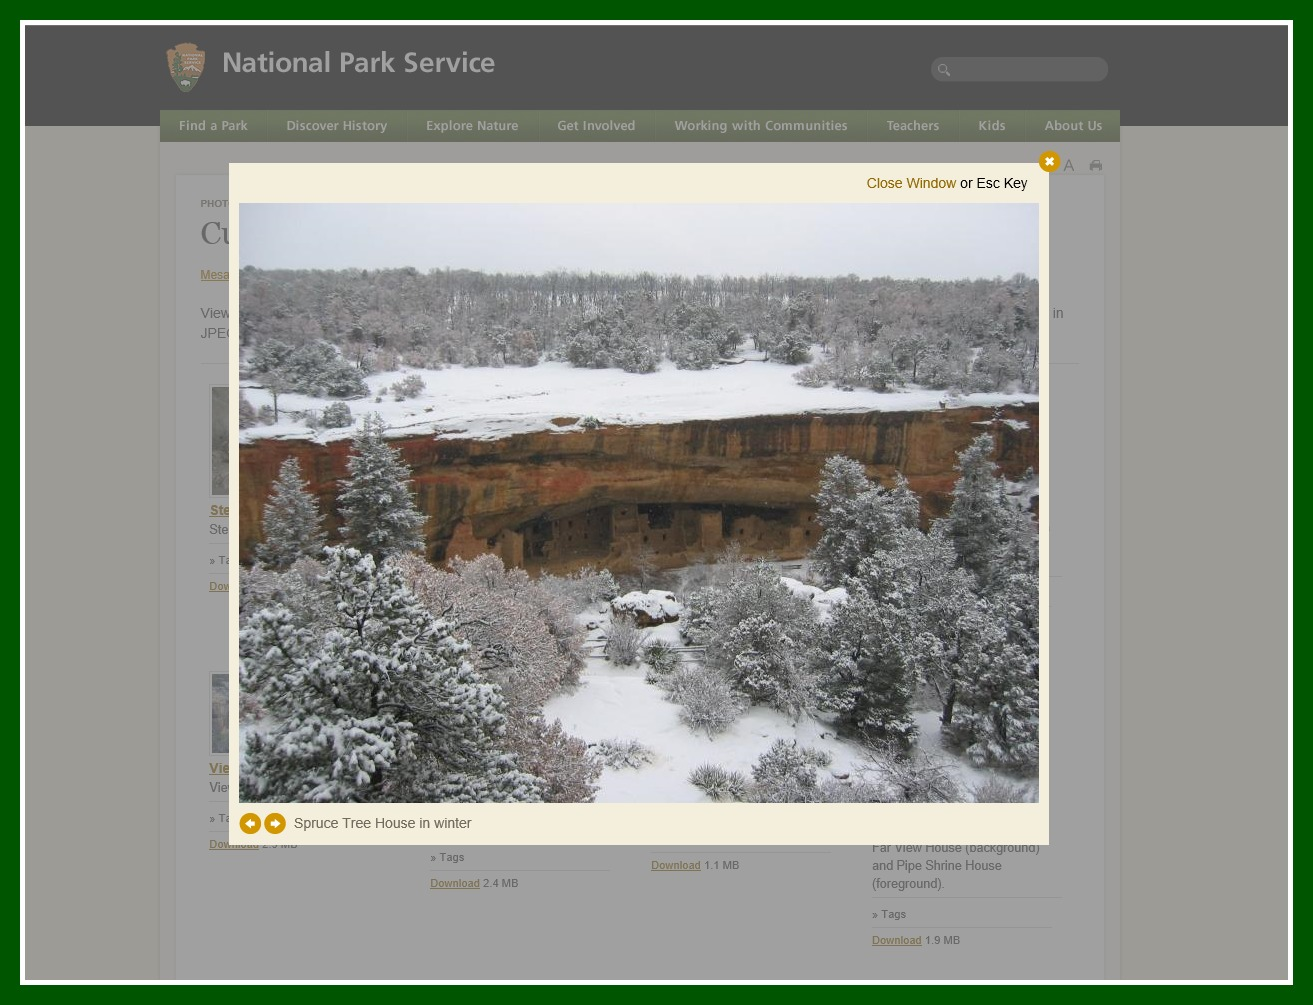 mesa verde national park catholic girl personals History of mesa verde national park service  2010 catholic church attacked by police  box step boys and girl minuette.